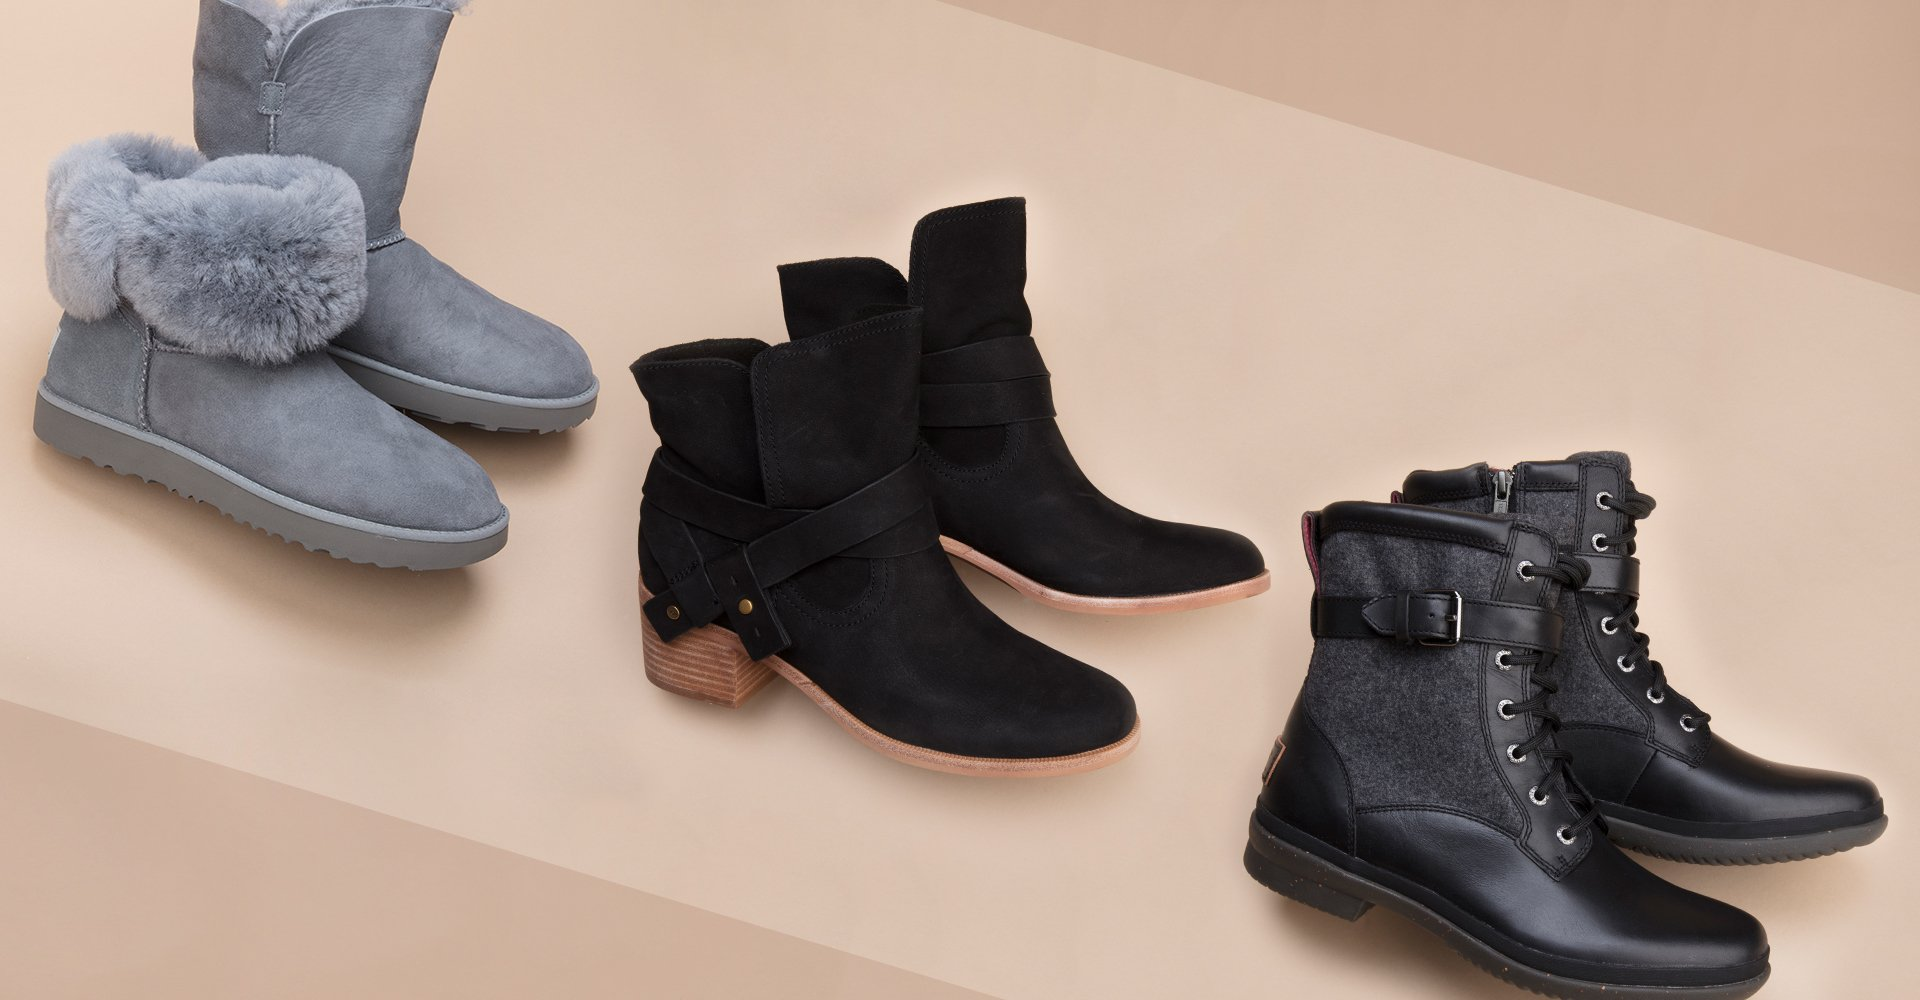 Image of three pairs of UGG boots